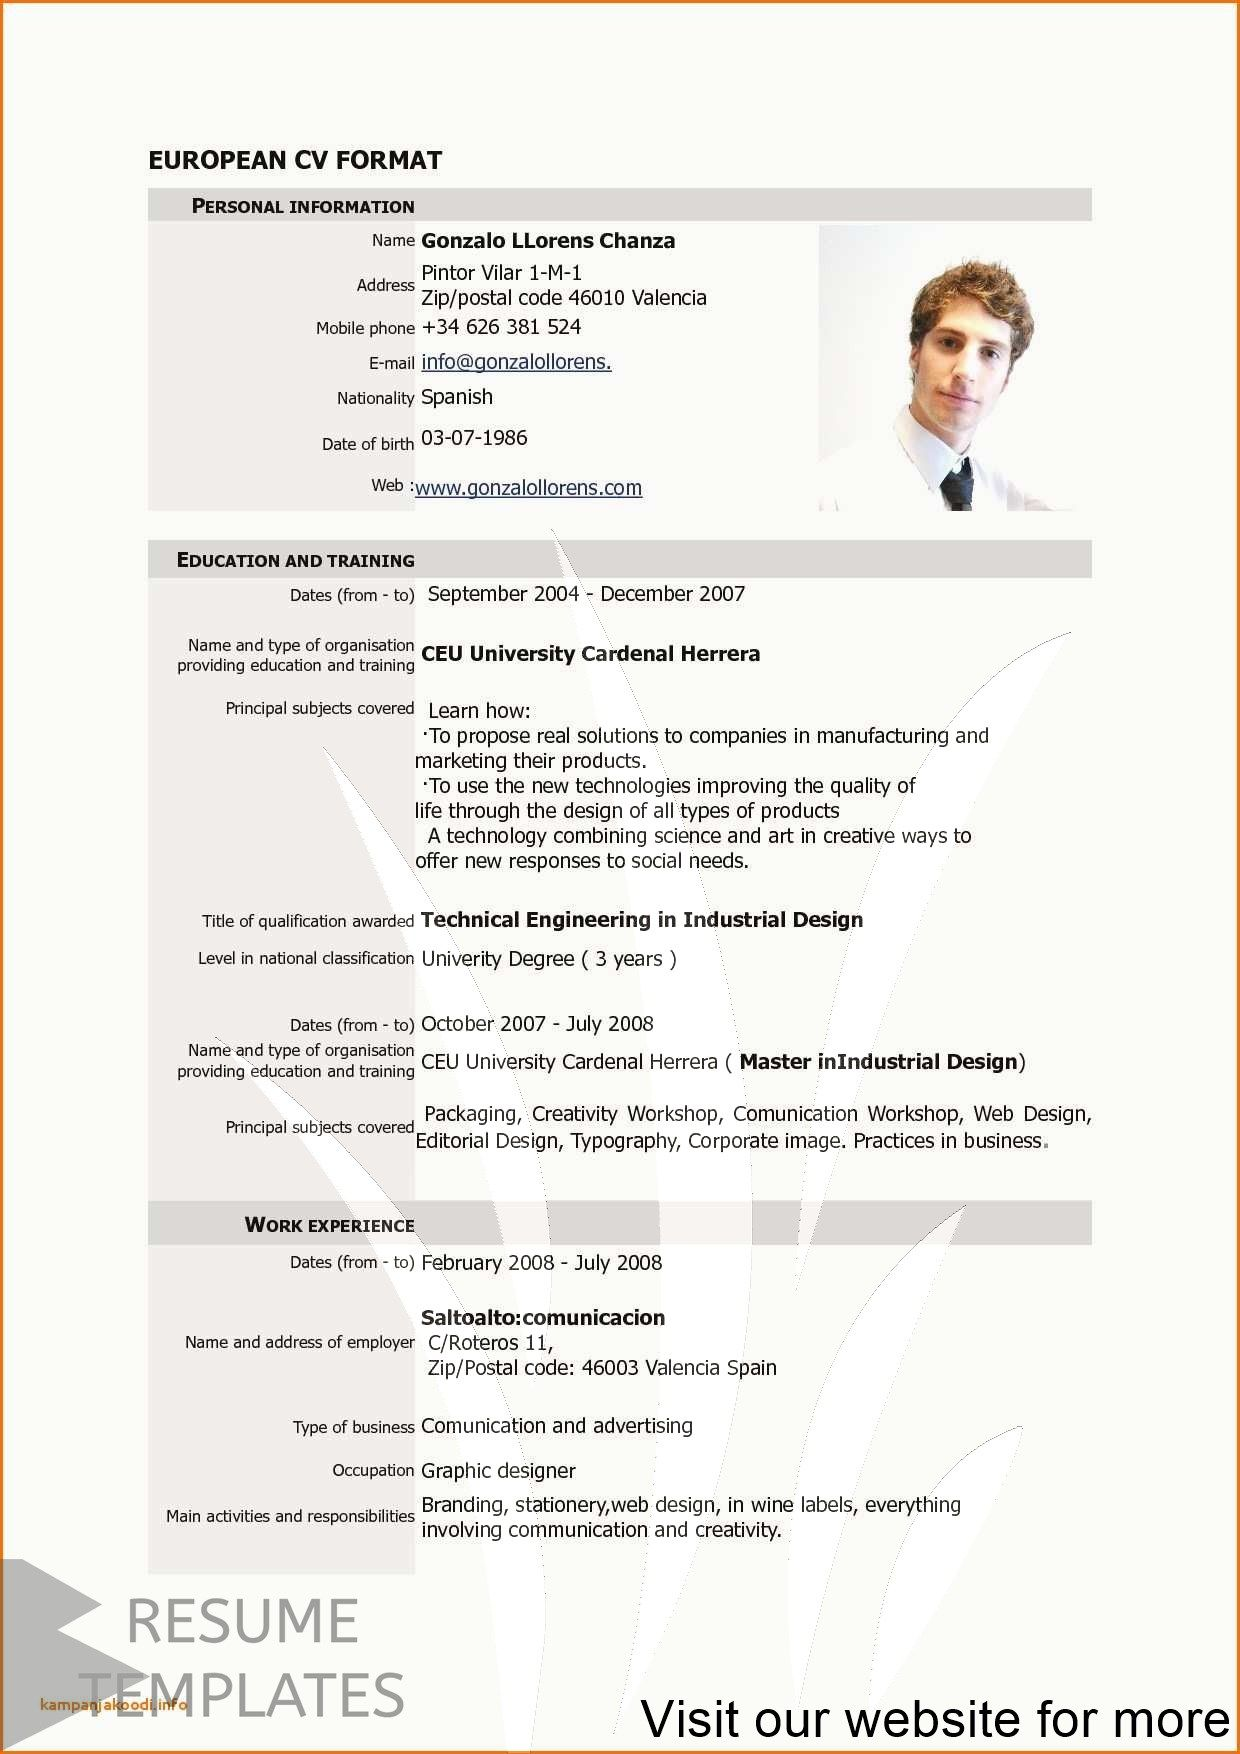 resume examples 2018 Professional in 2020 Resume